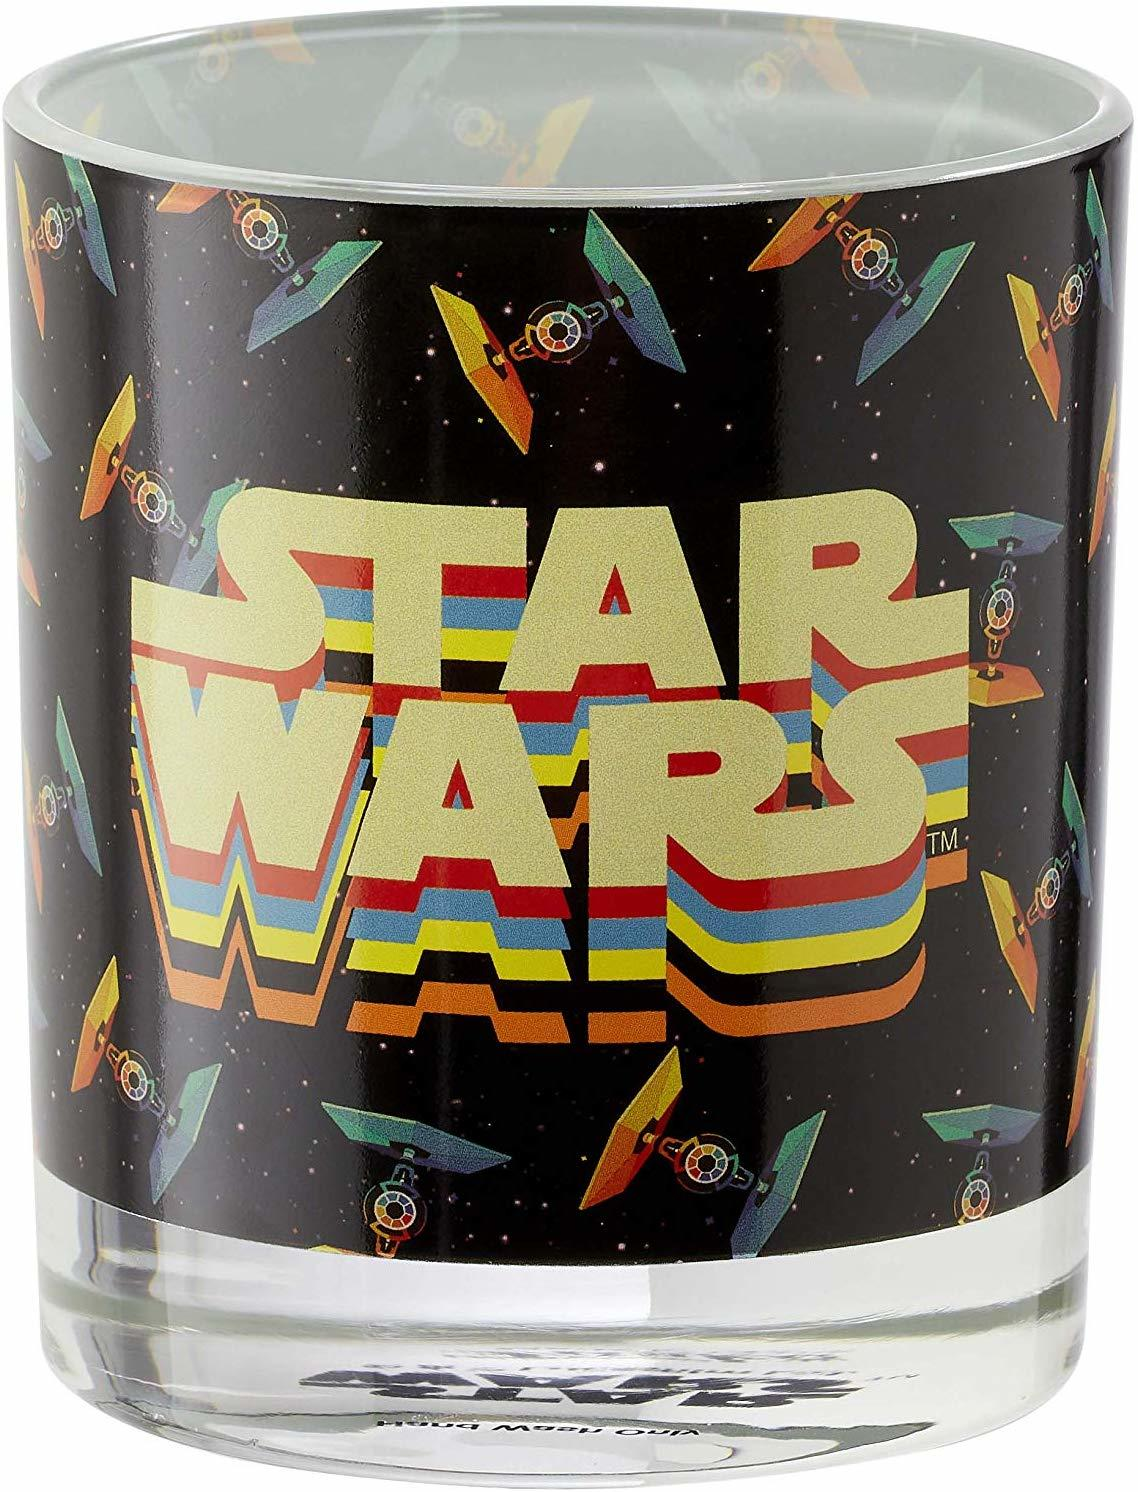 Star Wars Retro Tumbler Set Retro Vehicles